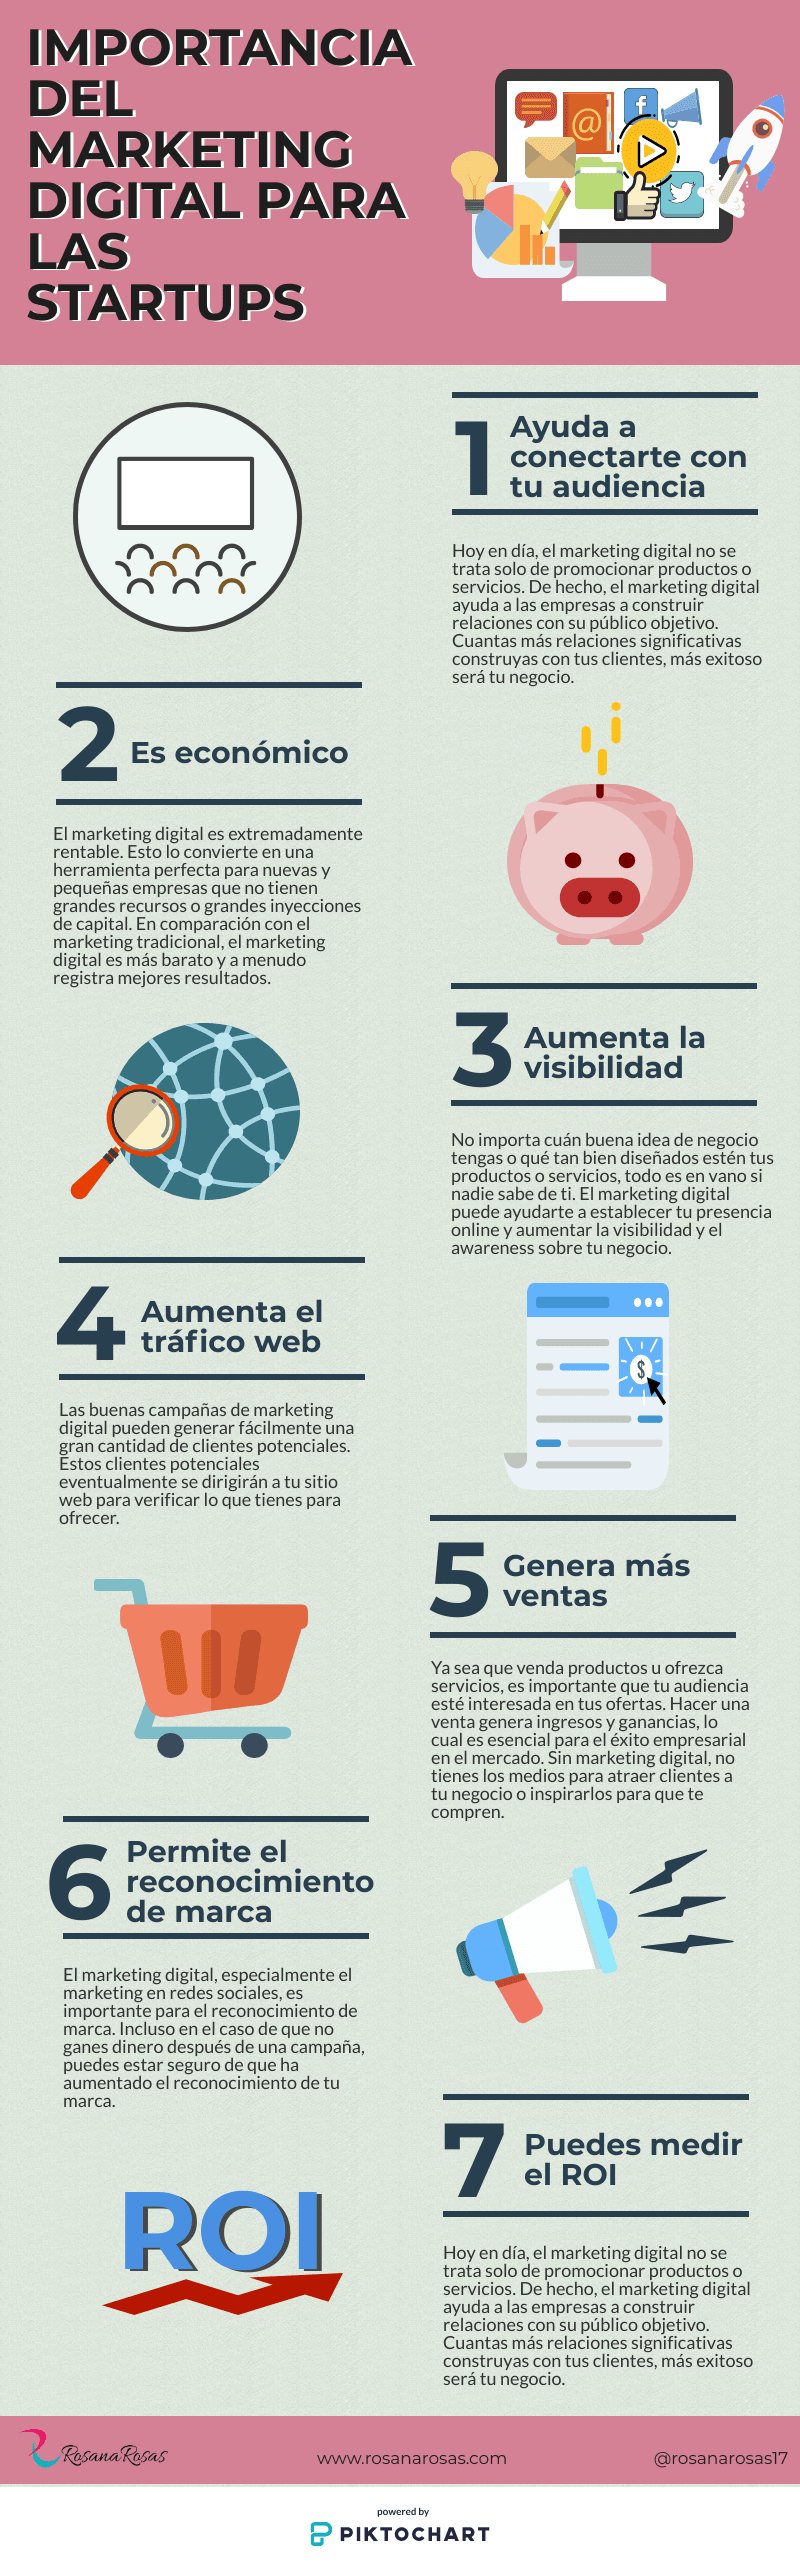 La importancia del marketing digital para las startups